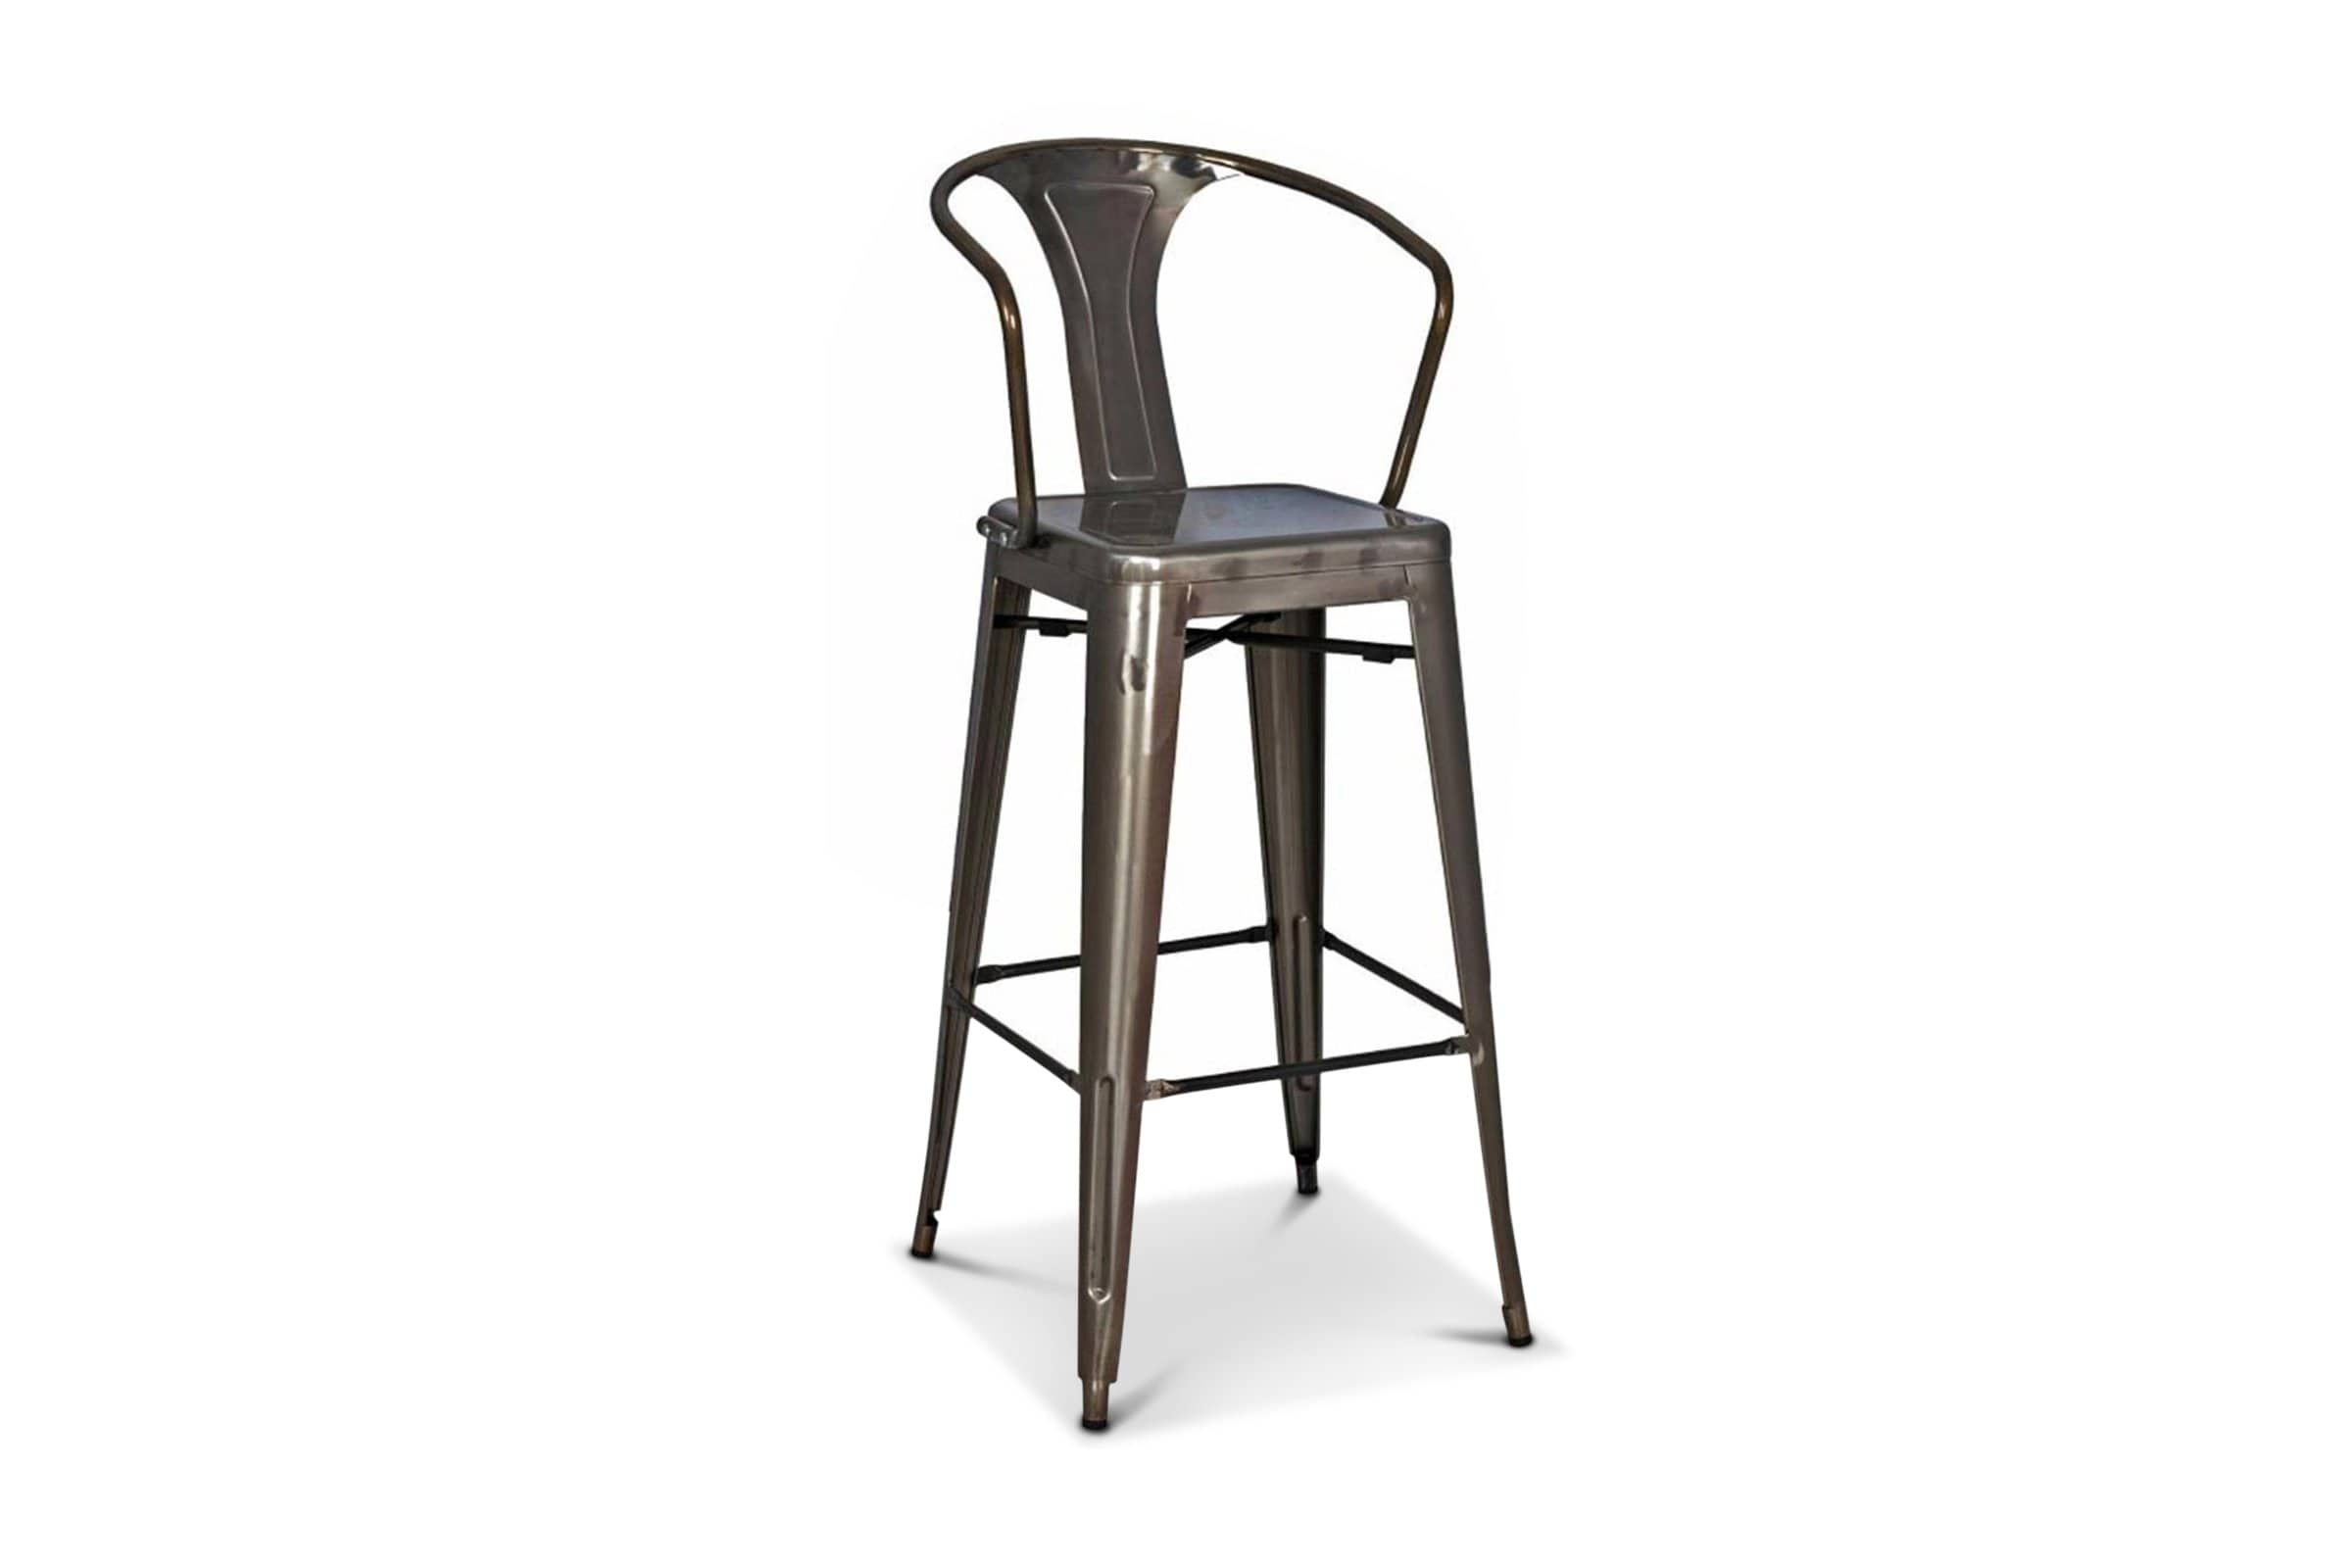 Oxford Metal Counter Chair GUNMETAL - SET OF 4 - - Accent Chair - Furniture sold by Apt2B